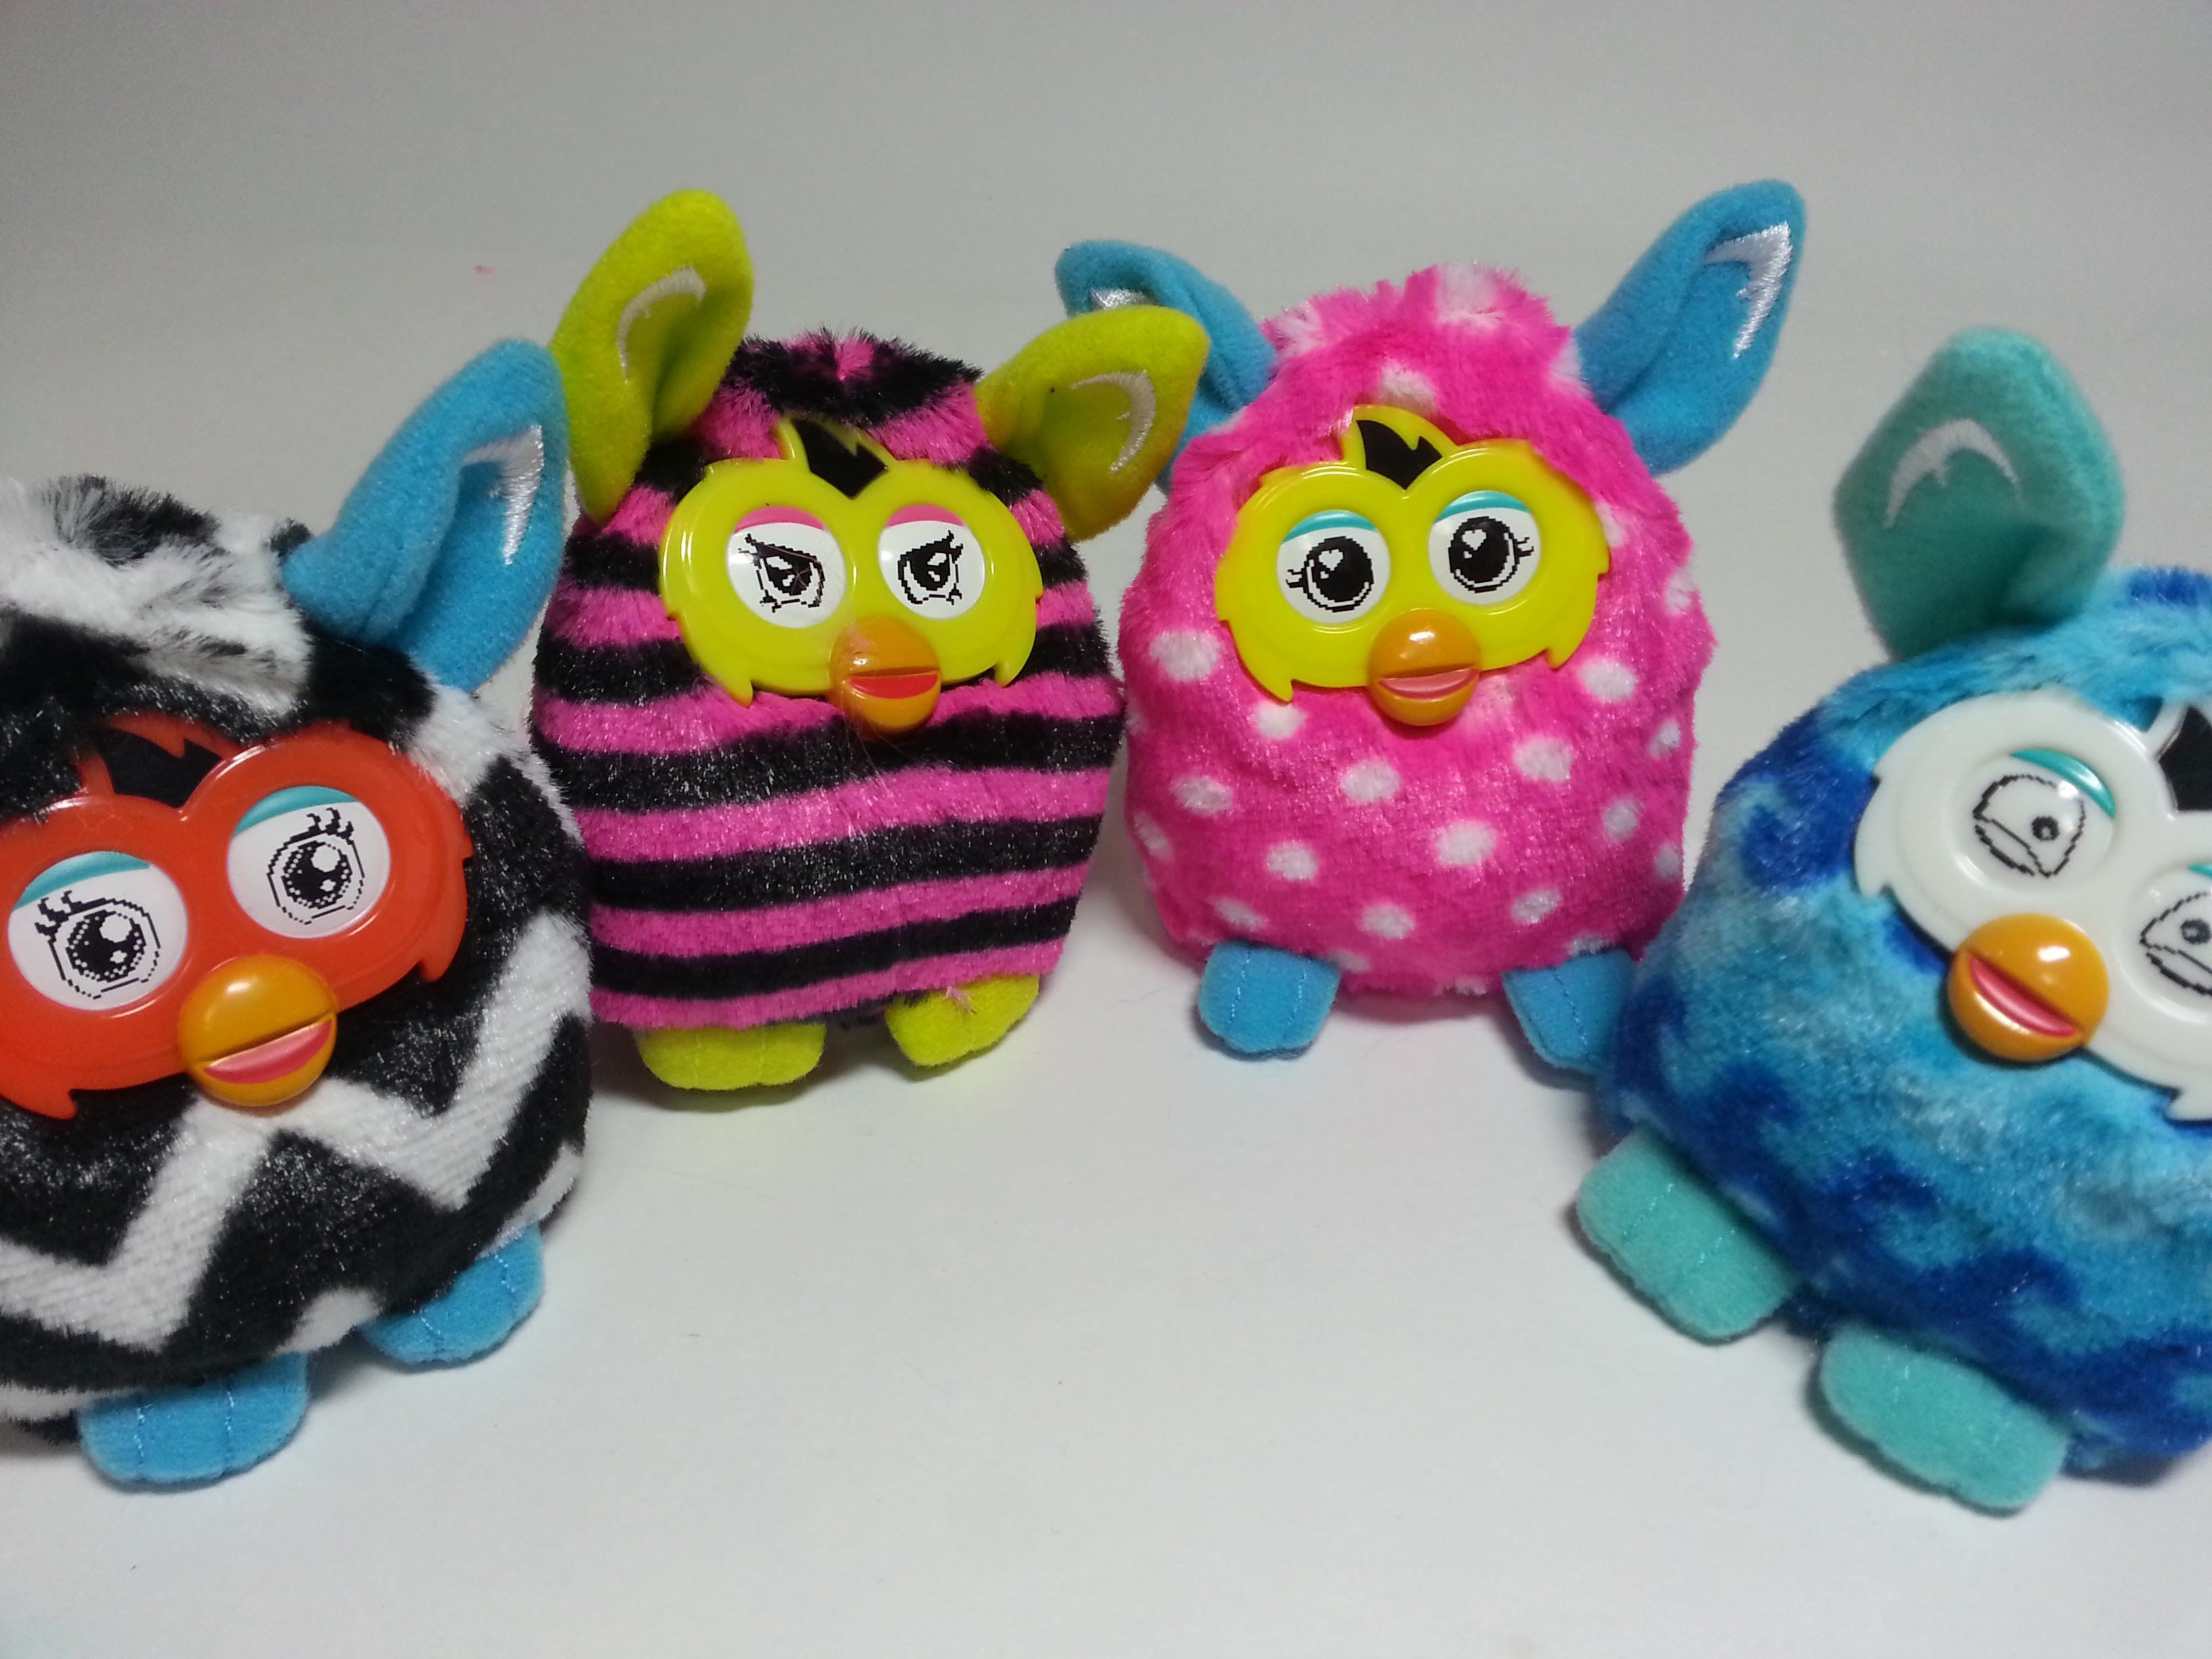 Mcdonalds Happy Meal Furby November 2015: Plush Blue Waves, Straight Stripes HD ‪#‎happymeal‬ ‪#‎mcdonalds‬ ‪#‎Furby‬